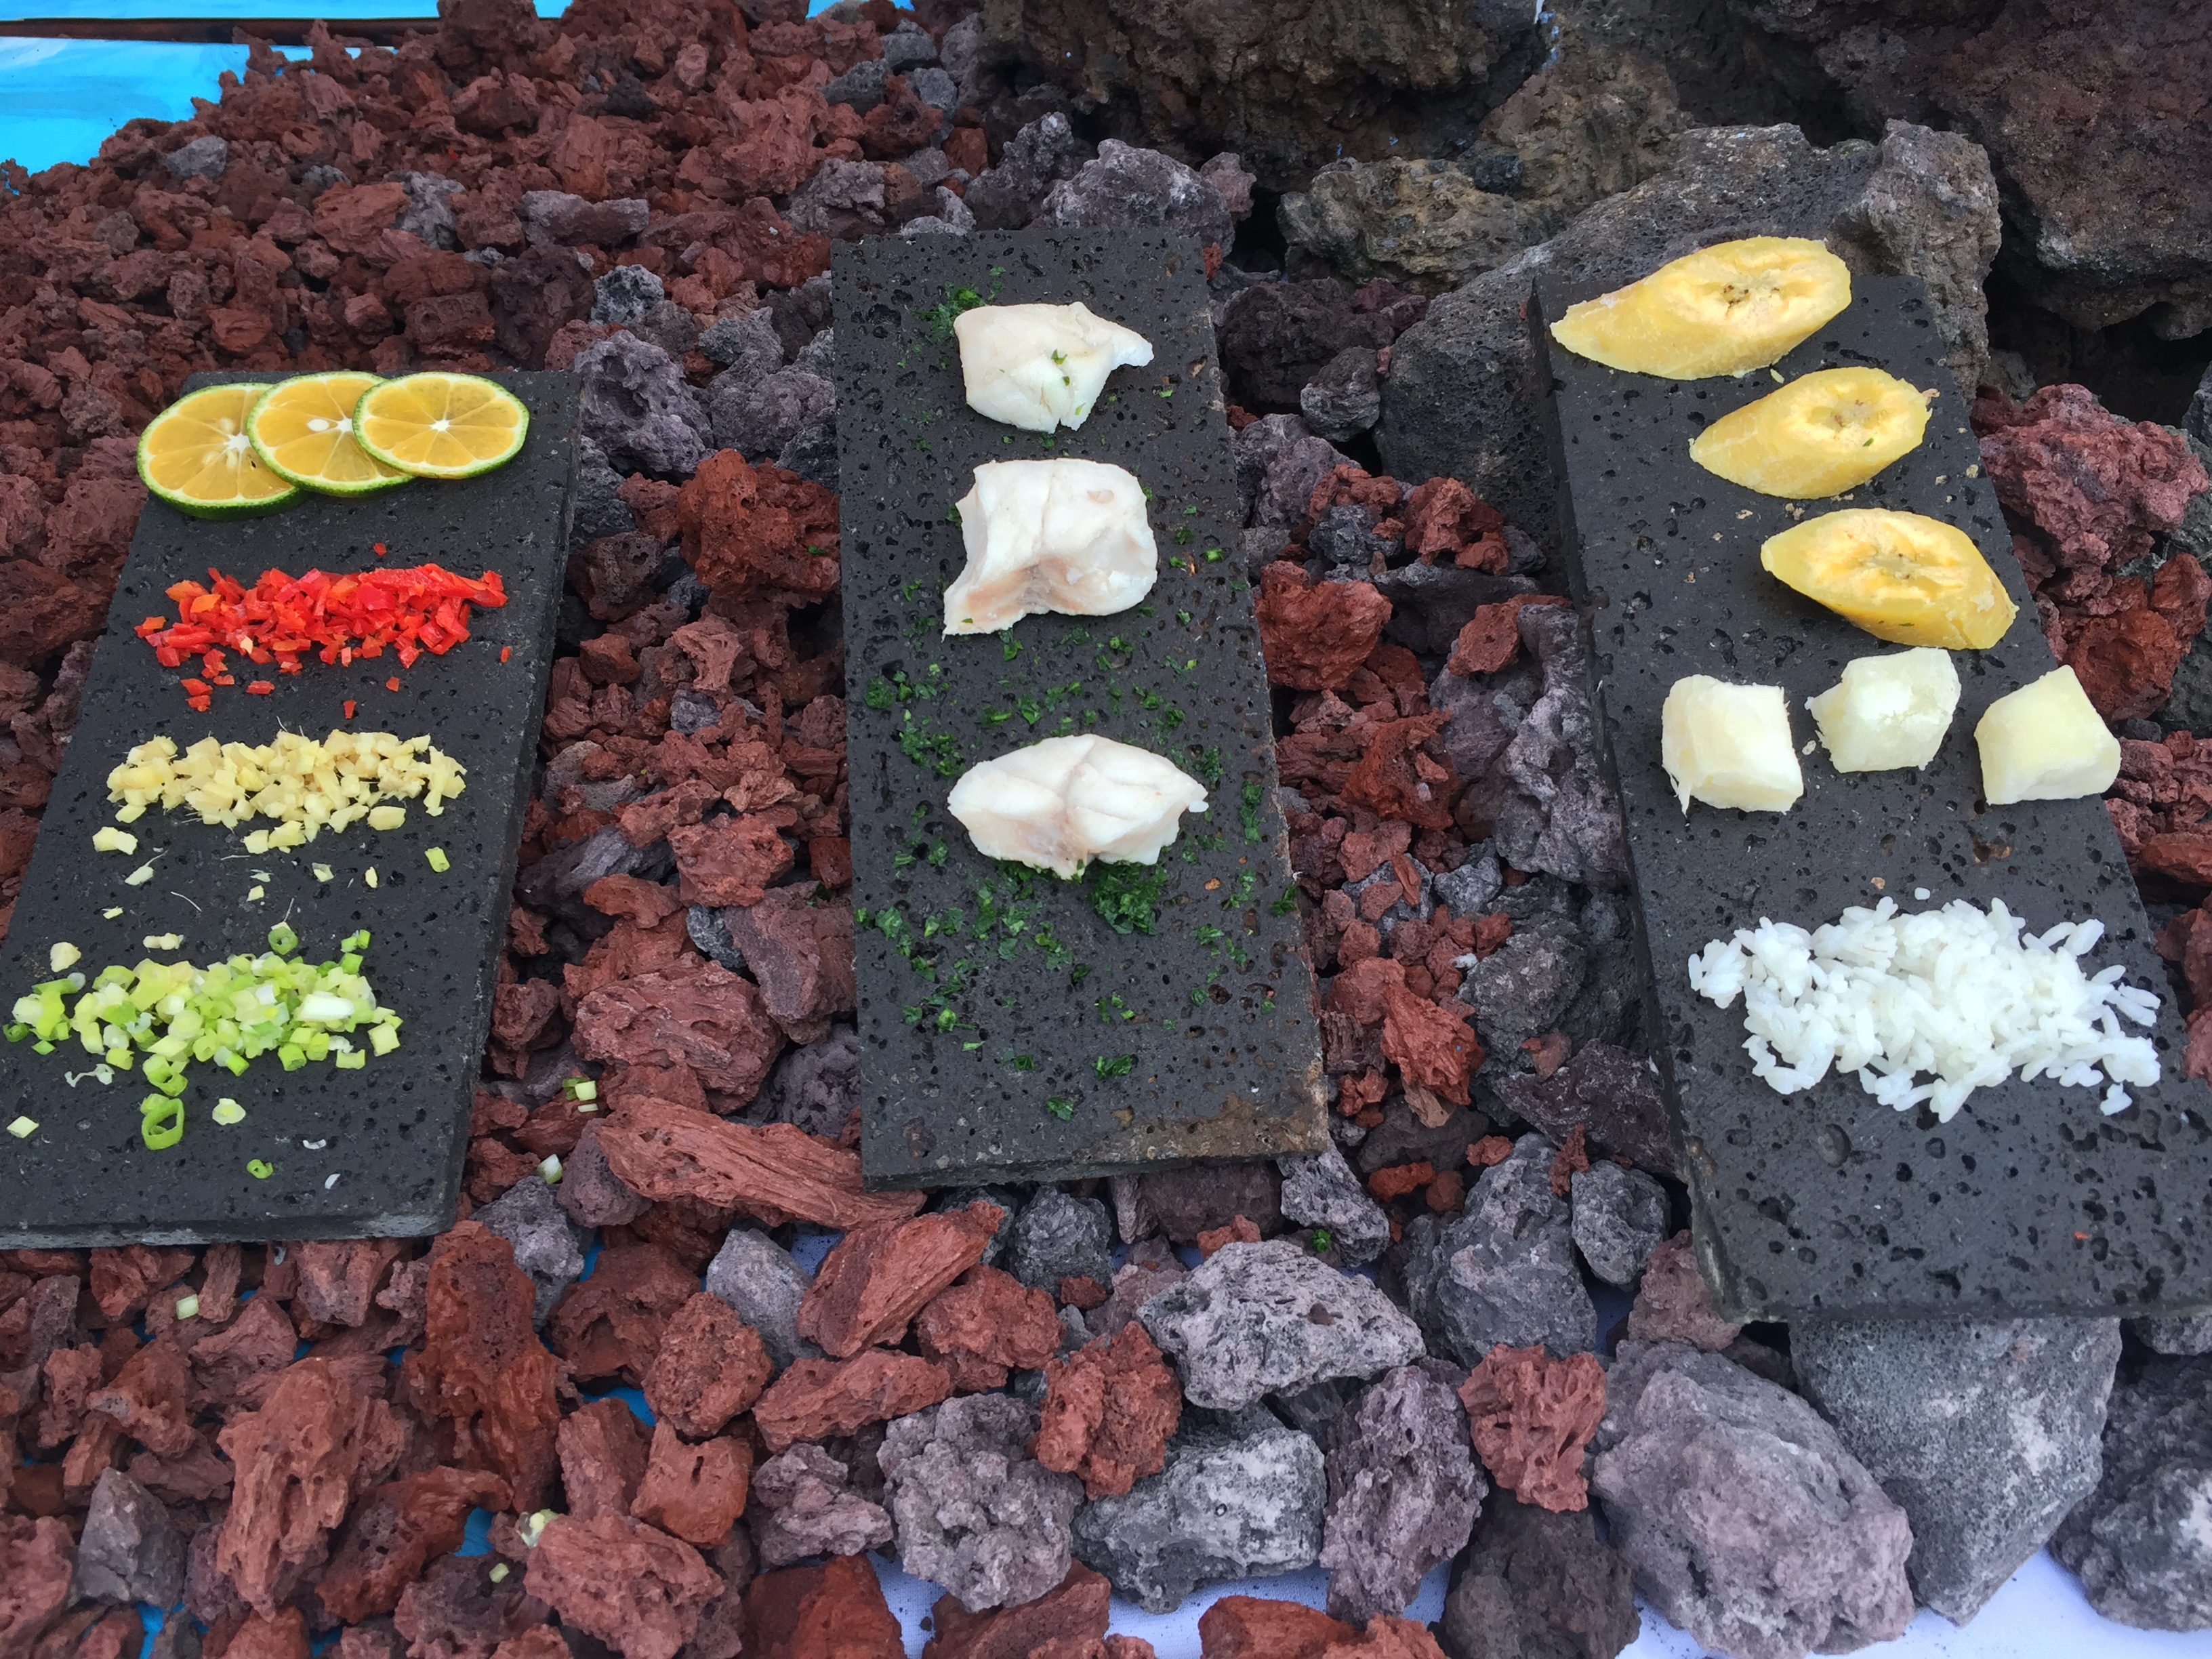 Local food on display over volcanic soil